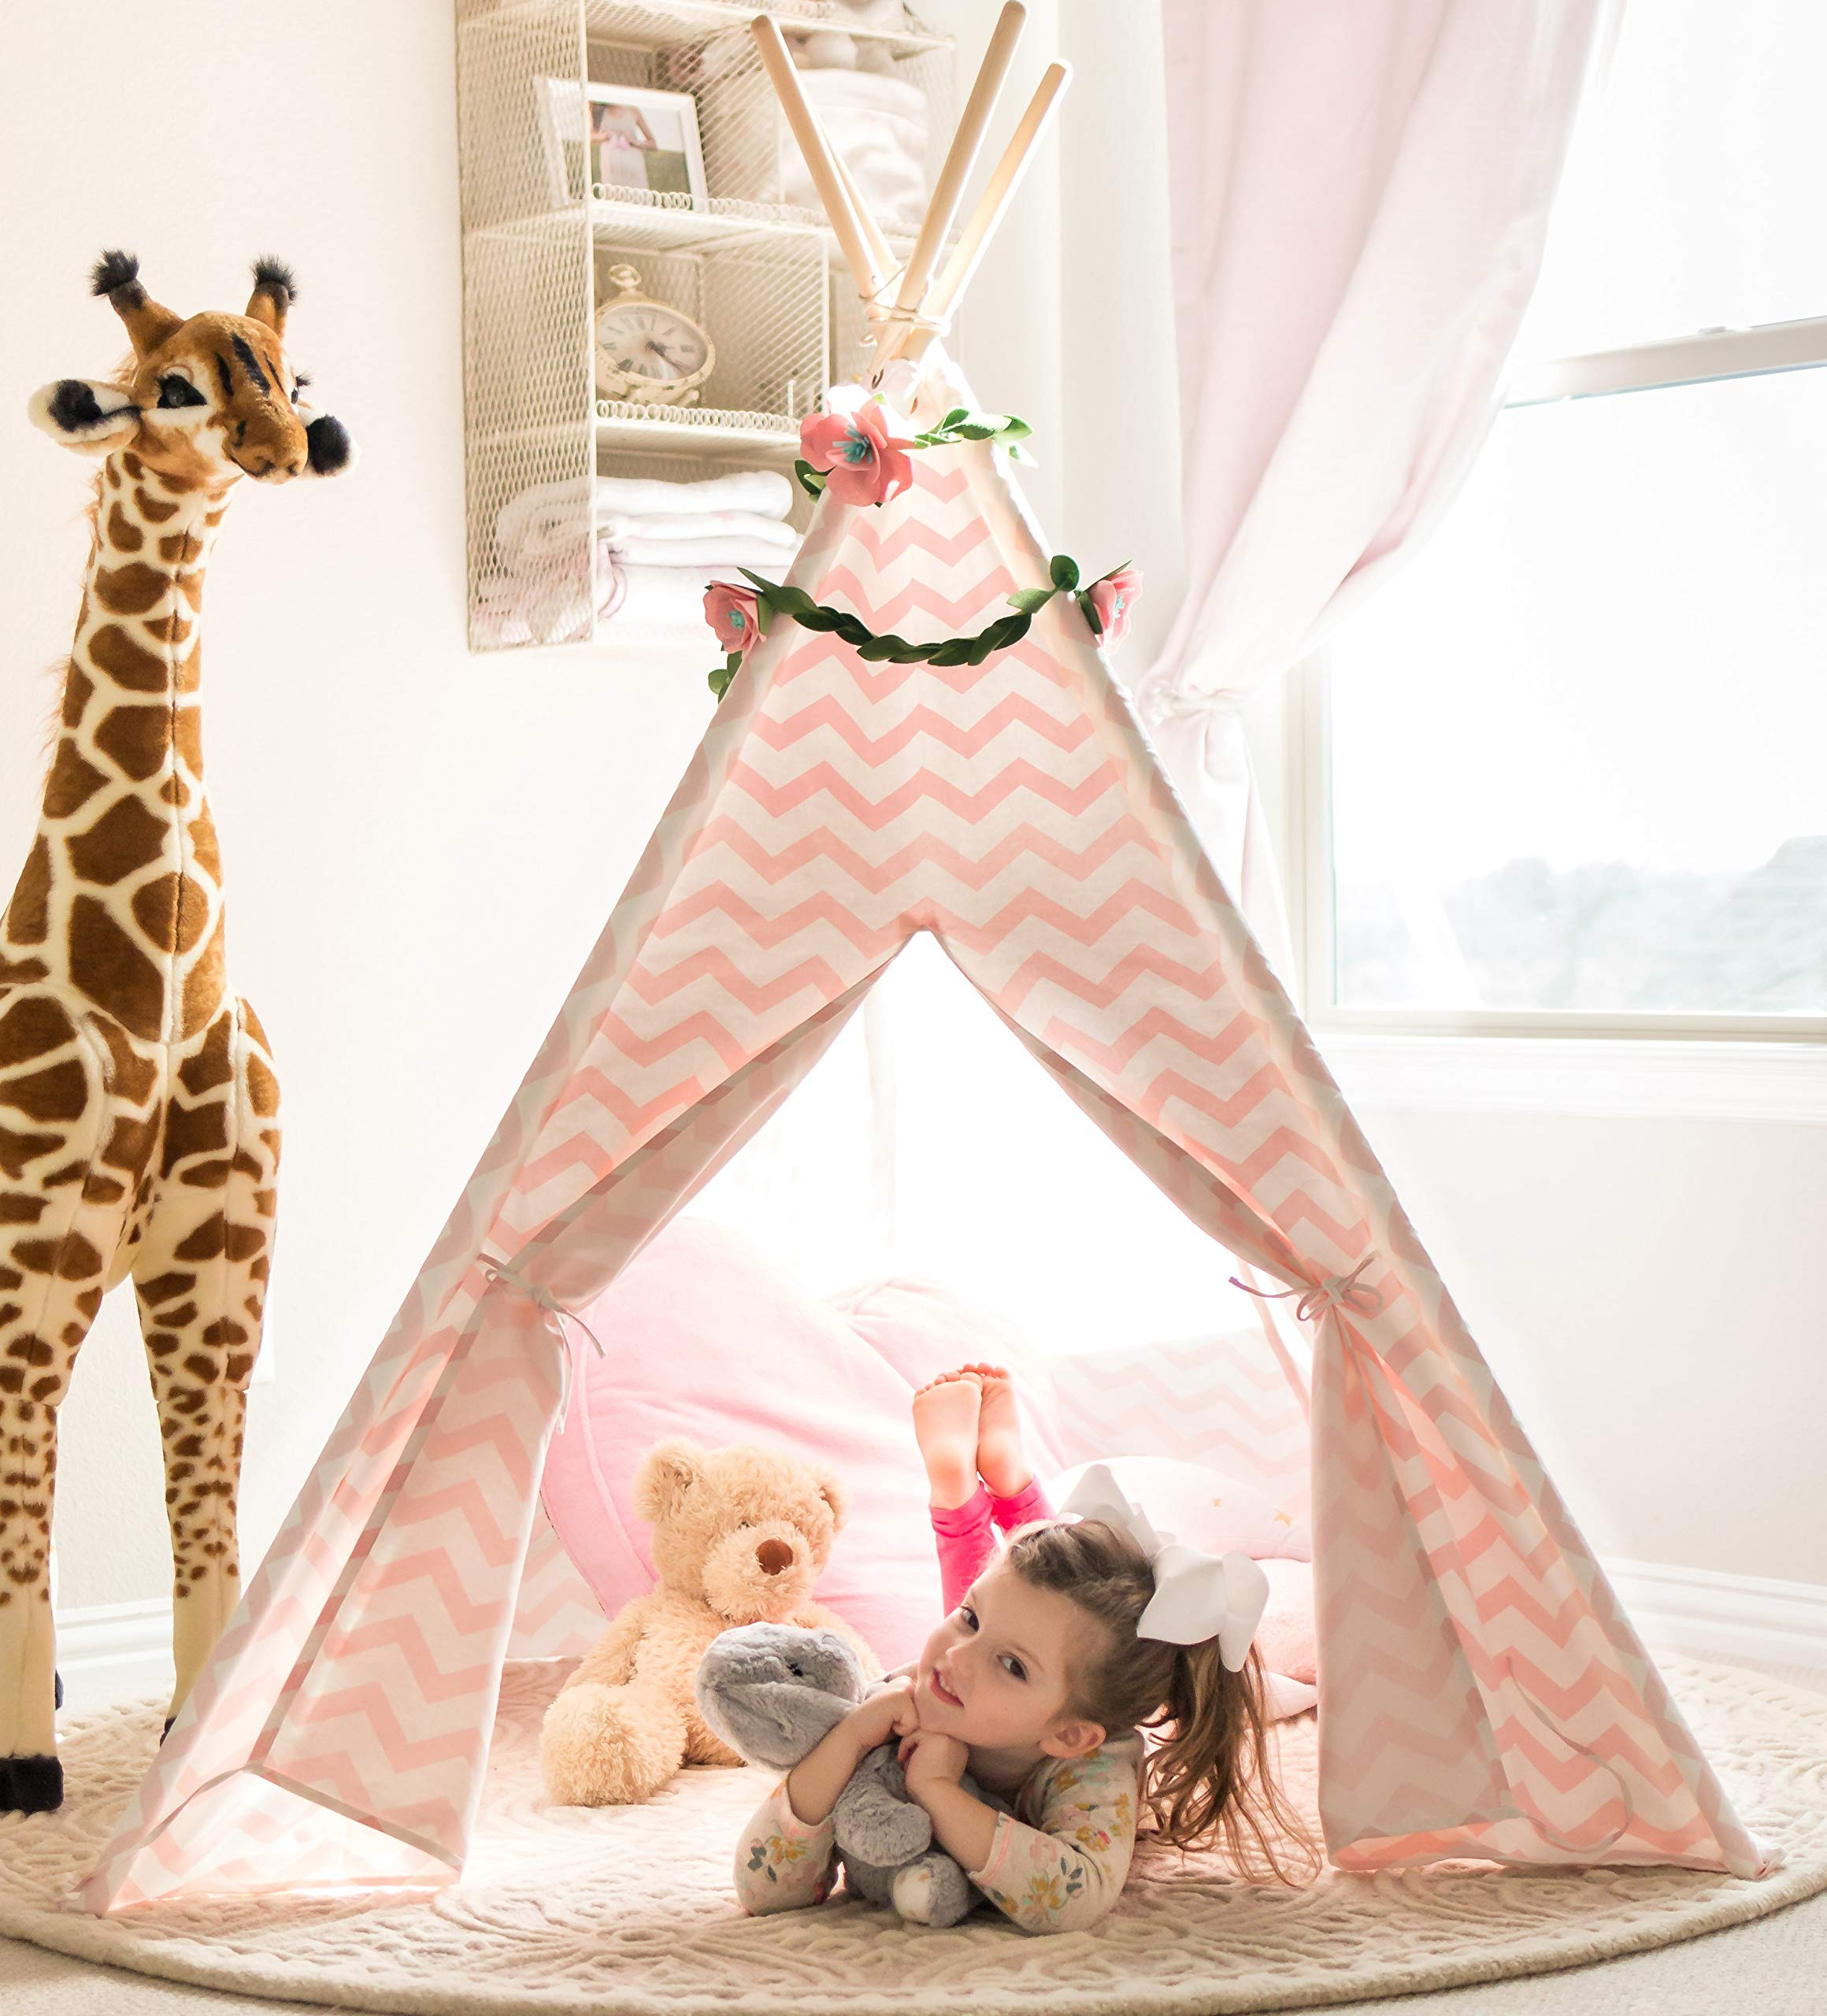 Tiny Land Teepee Tent for Kids - Girls Play Tent Pink Chevron Cotton Canvas Tipi by Tiny Land